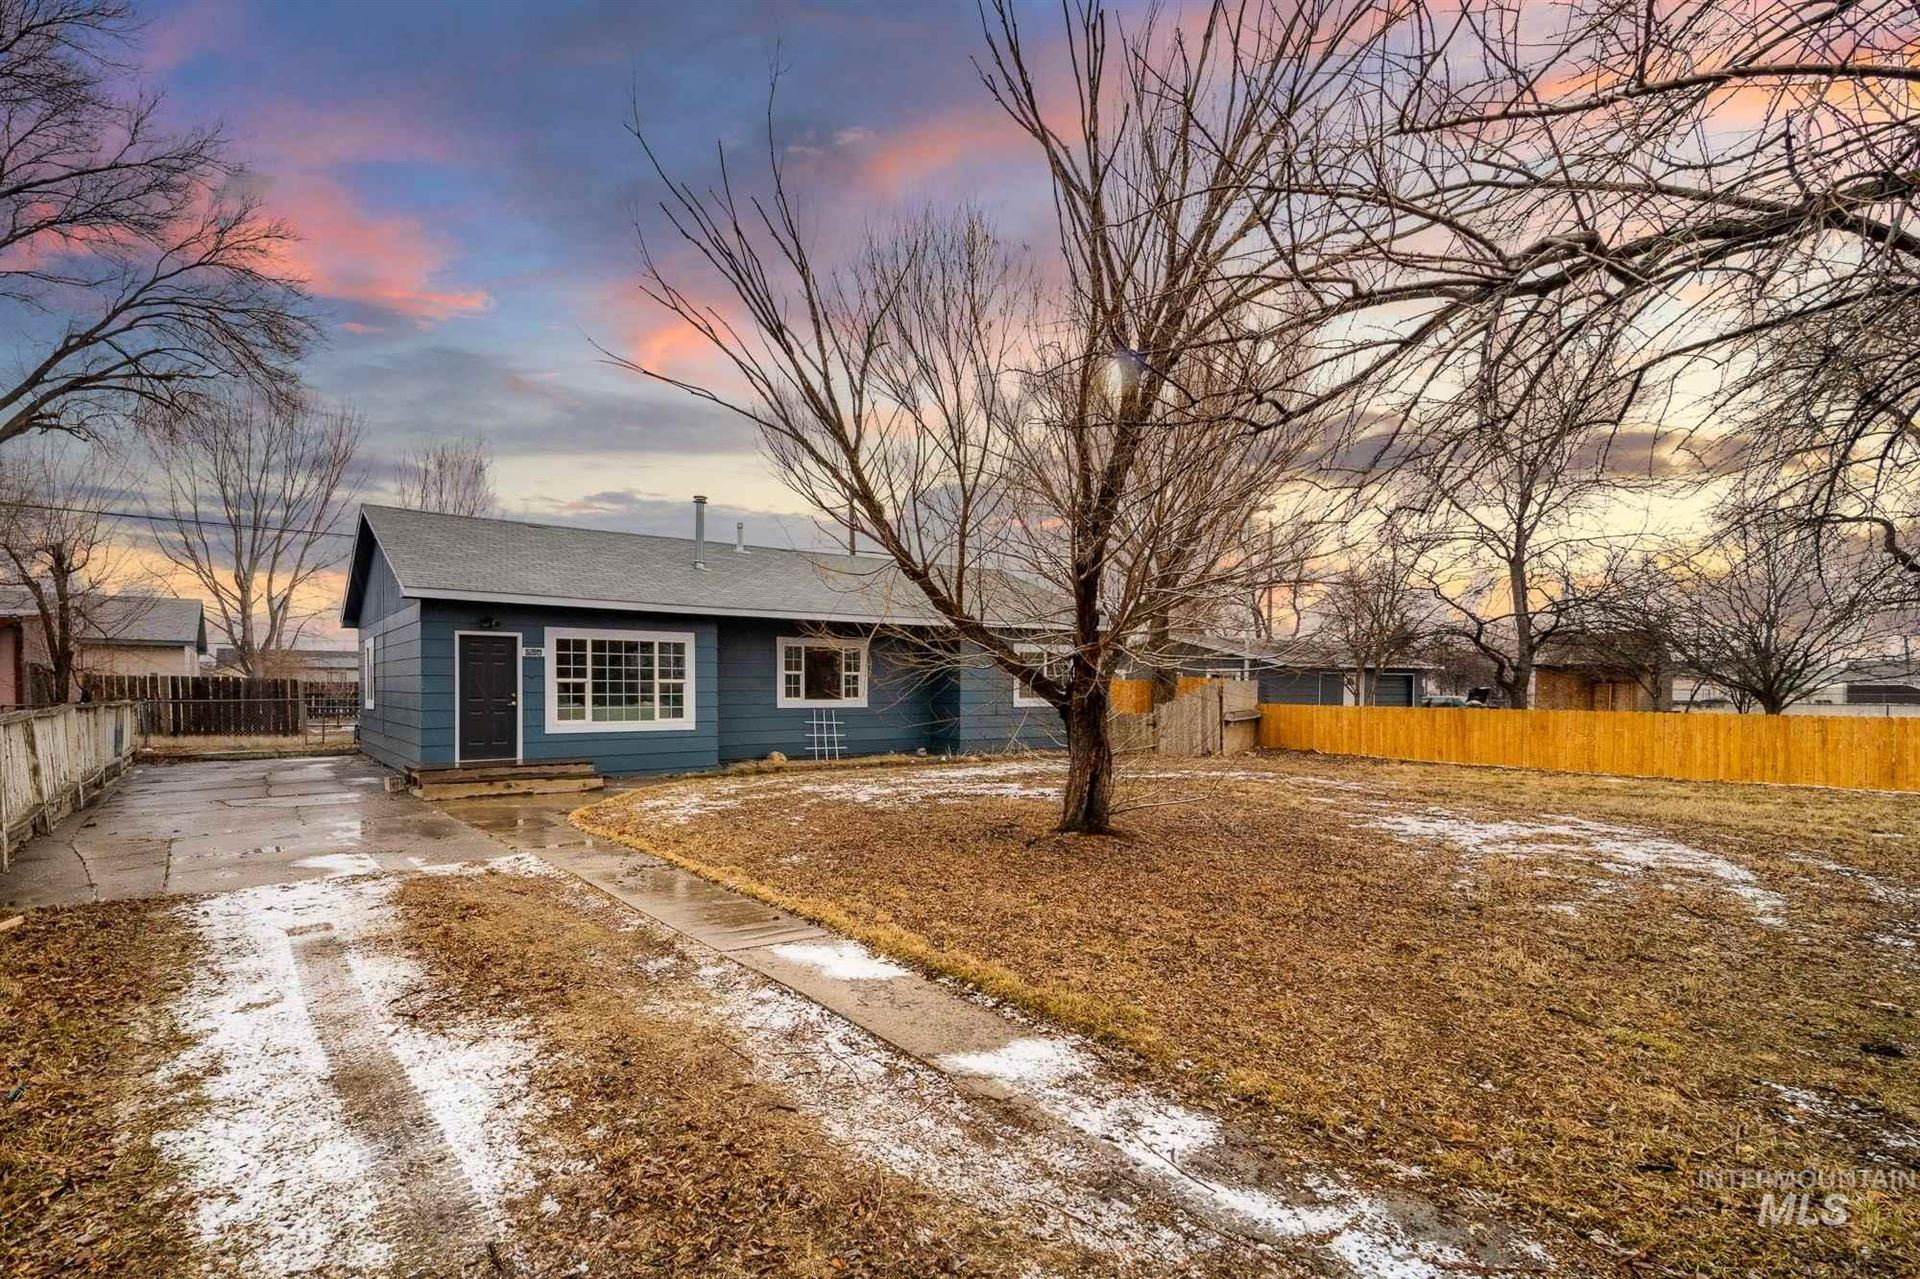 Photo of 550 NW Birch Ave, Mountain Home, ID 83647 (MLS # 98791603)